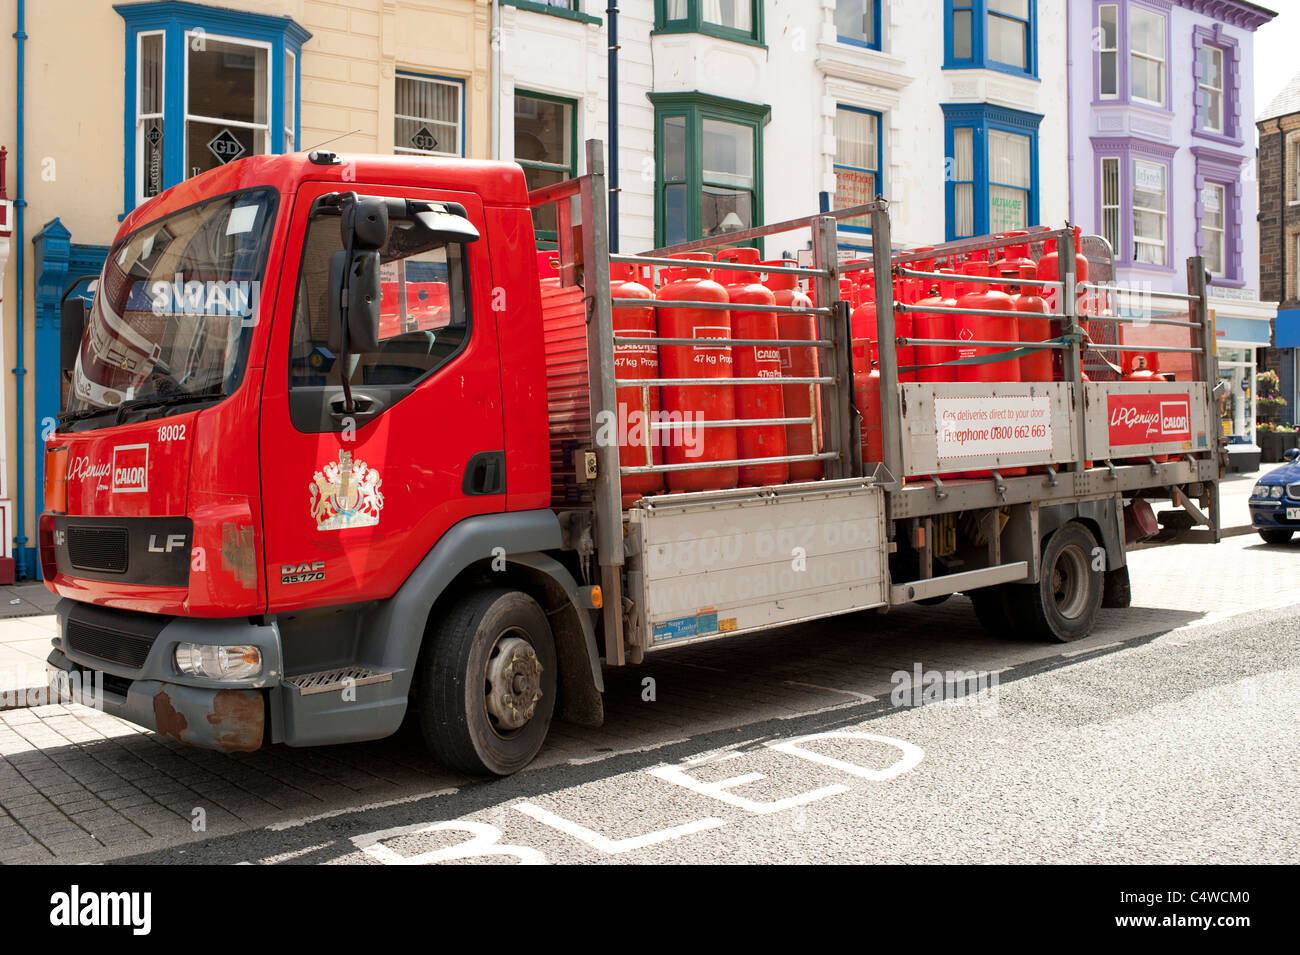 A delivery of orange coloured Calor propane gas bottles cylinders, UK - Stock Image